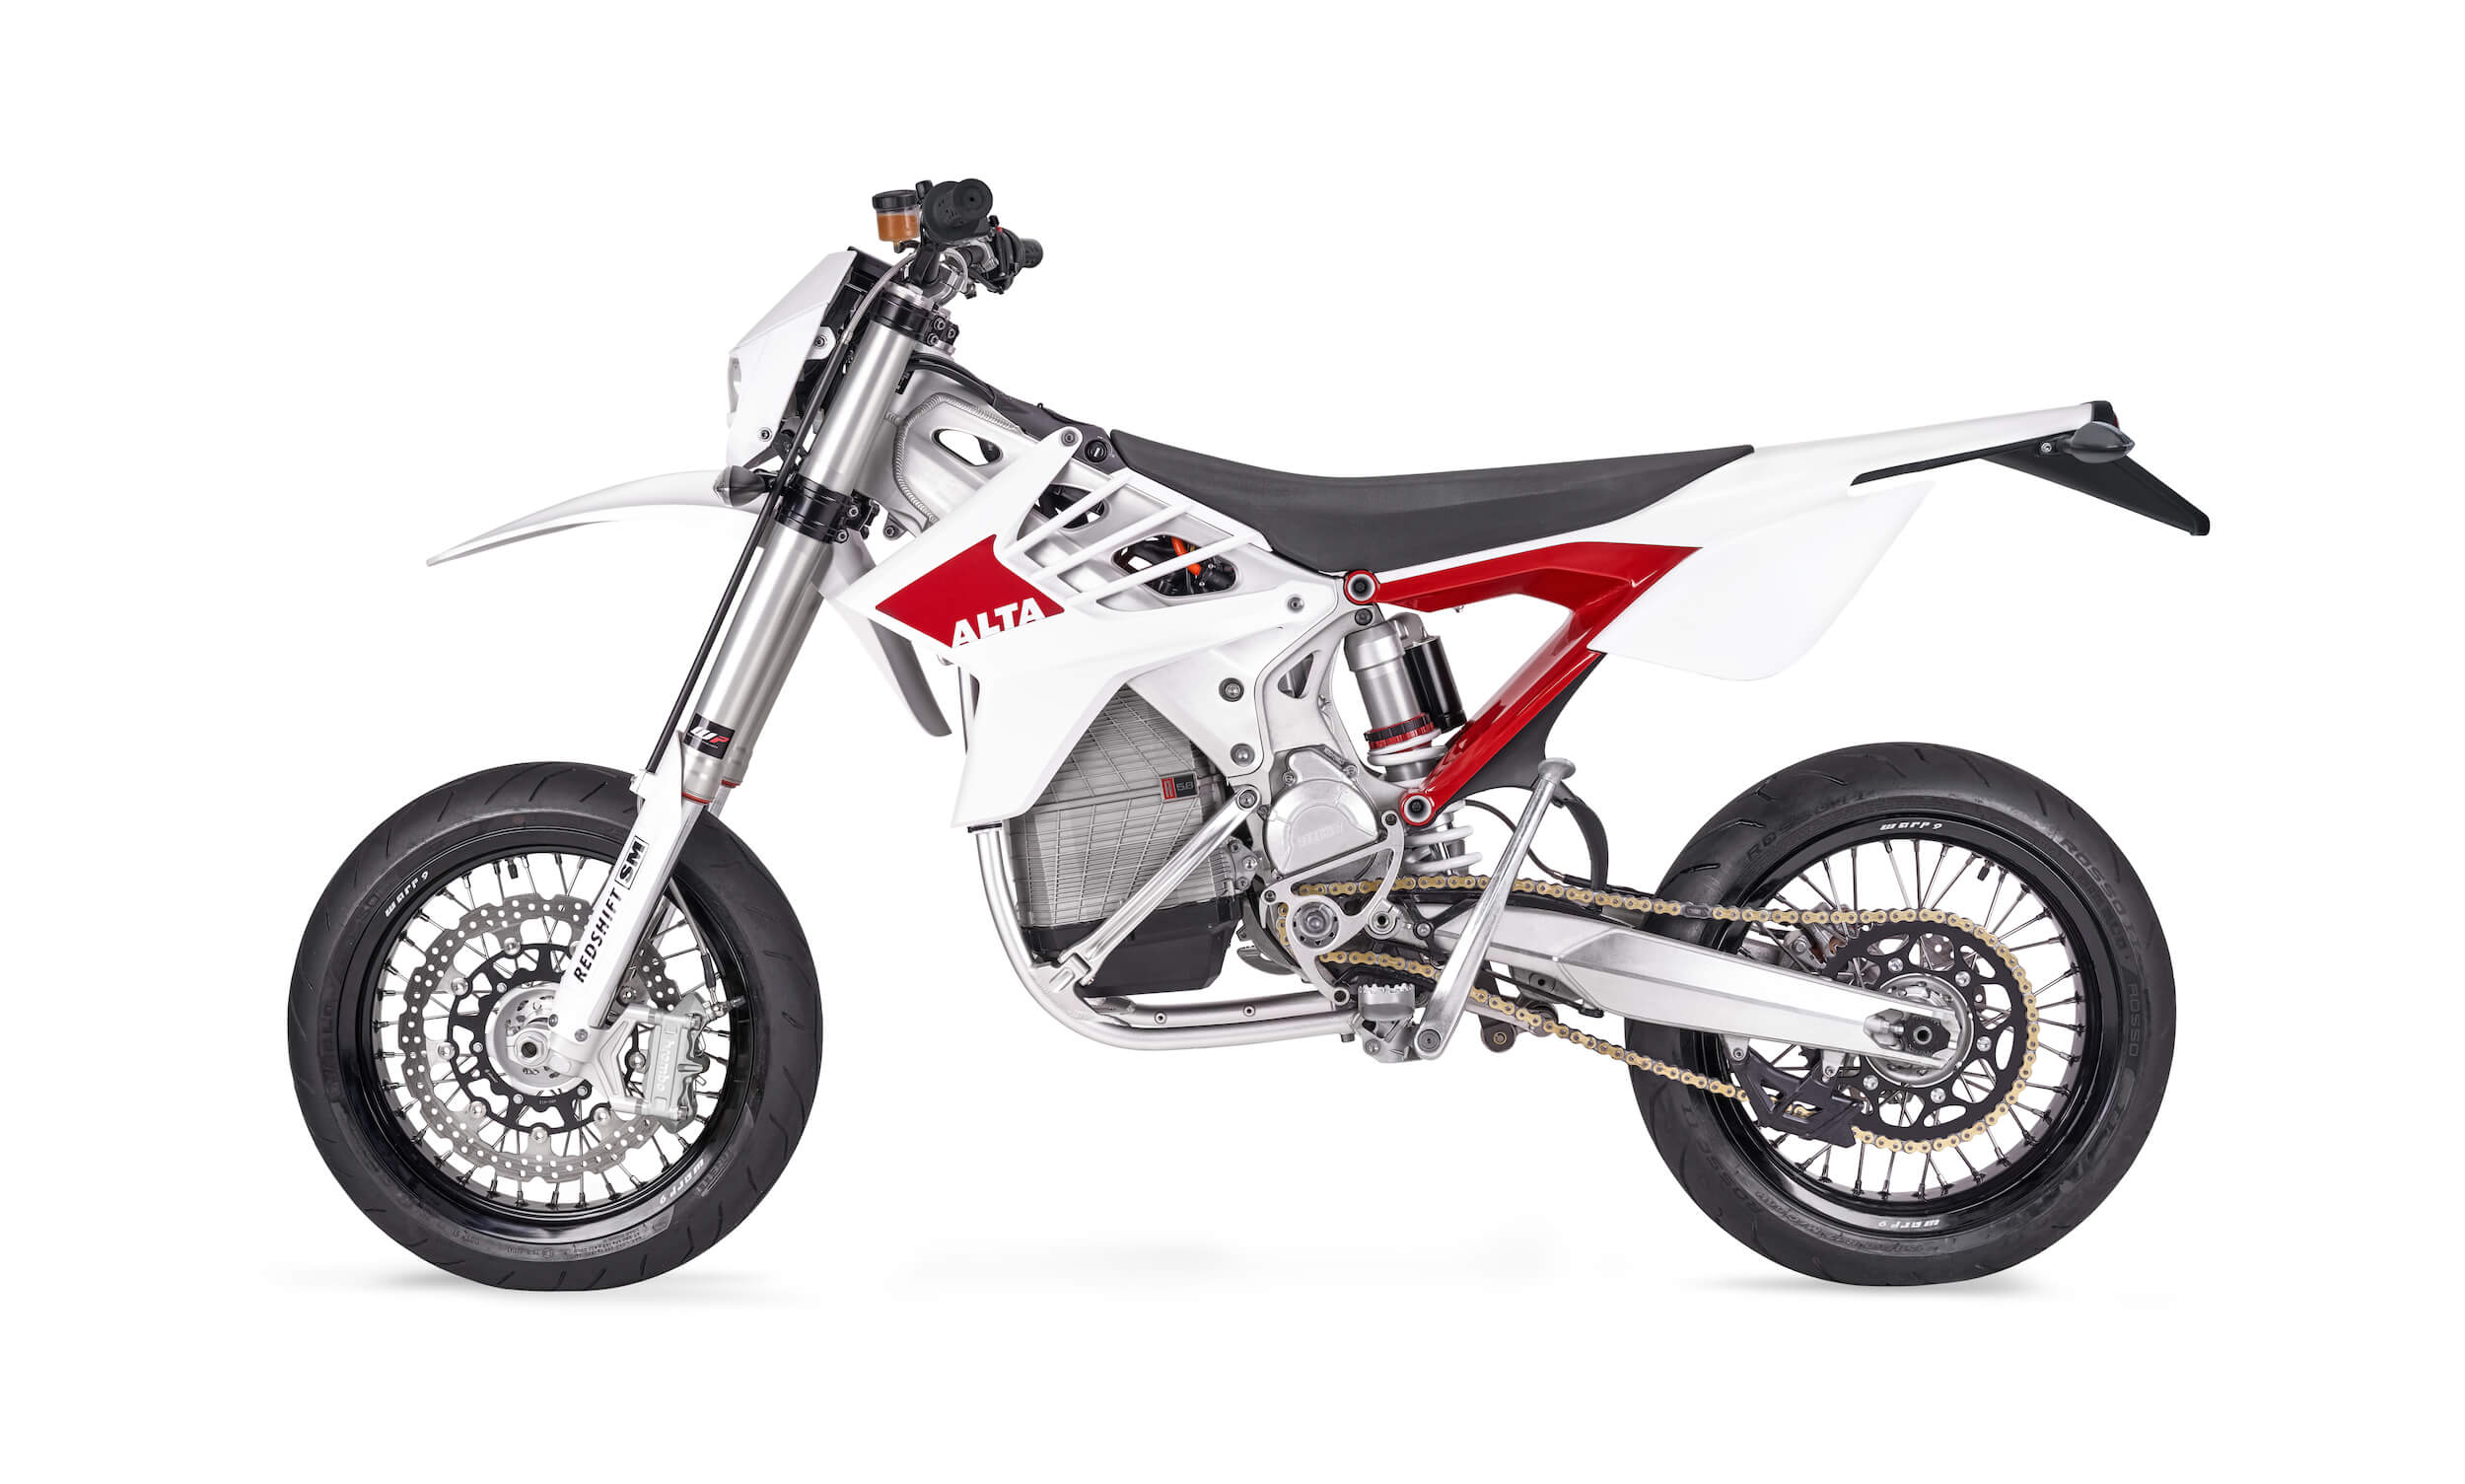 Harley Davidson Buys Into Alta Motors Amp Teams Up To Design An Electric Motorcycle